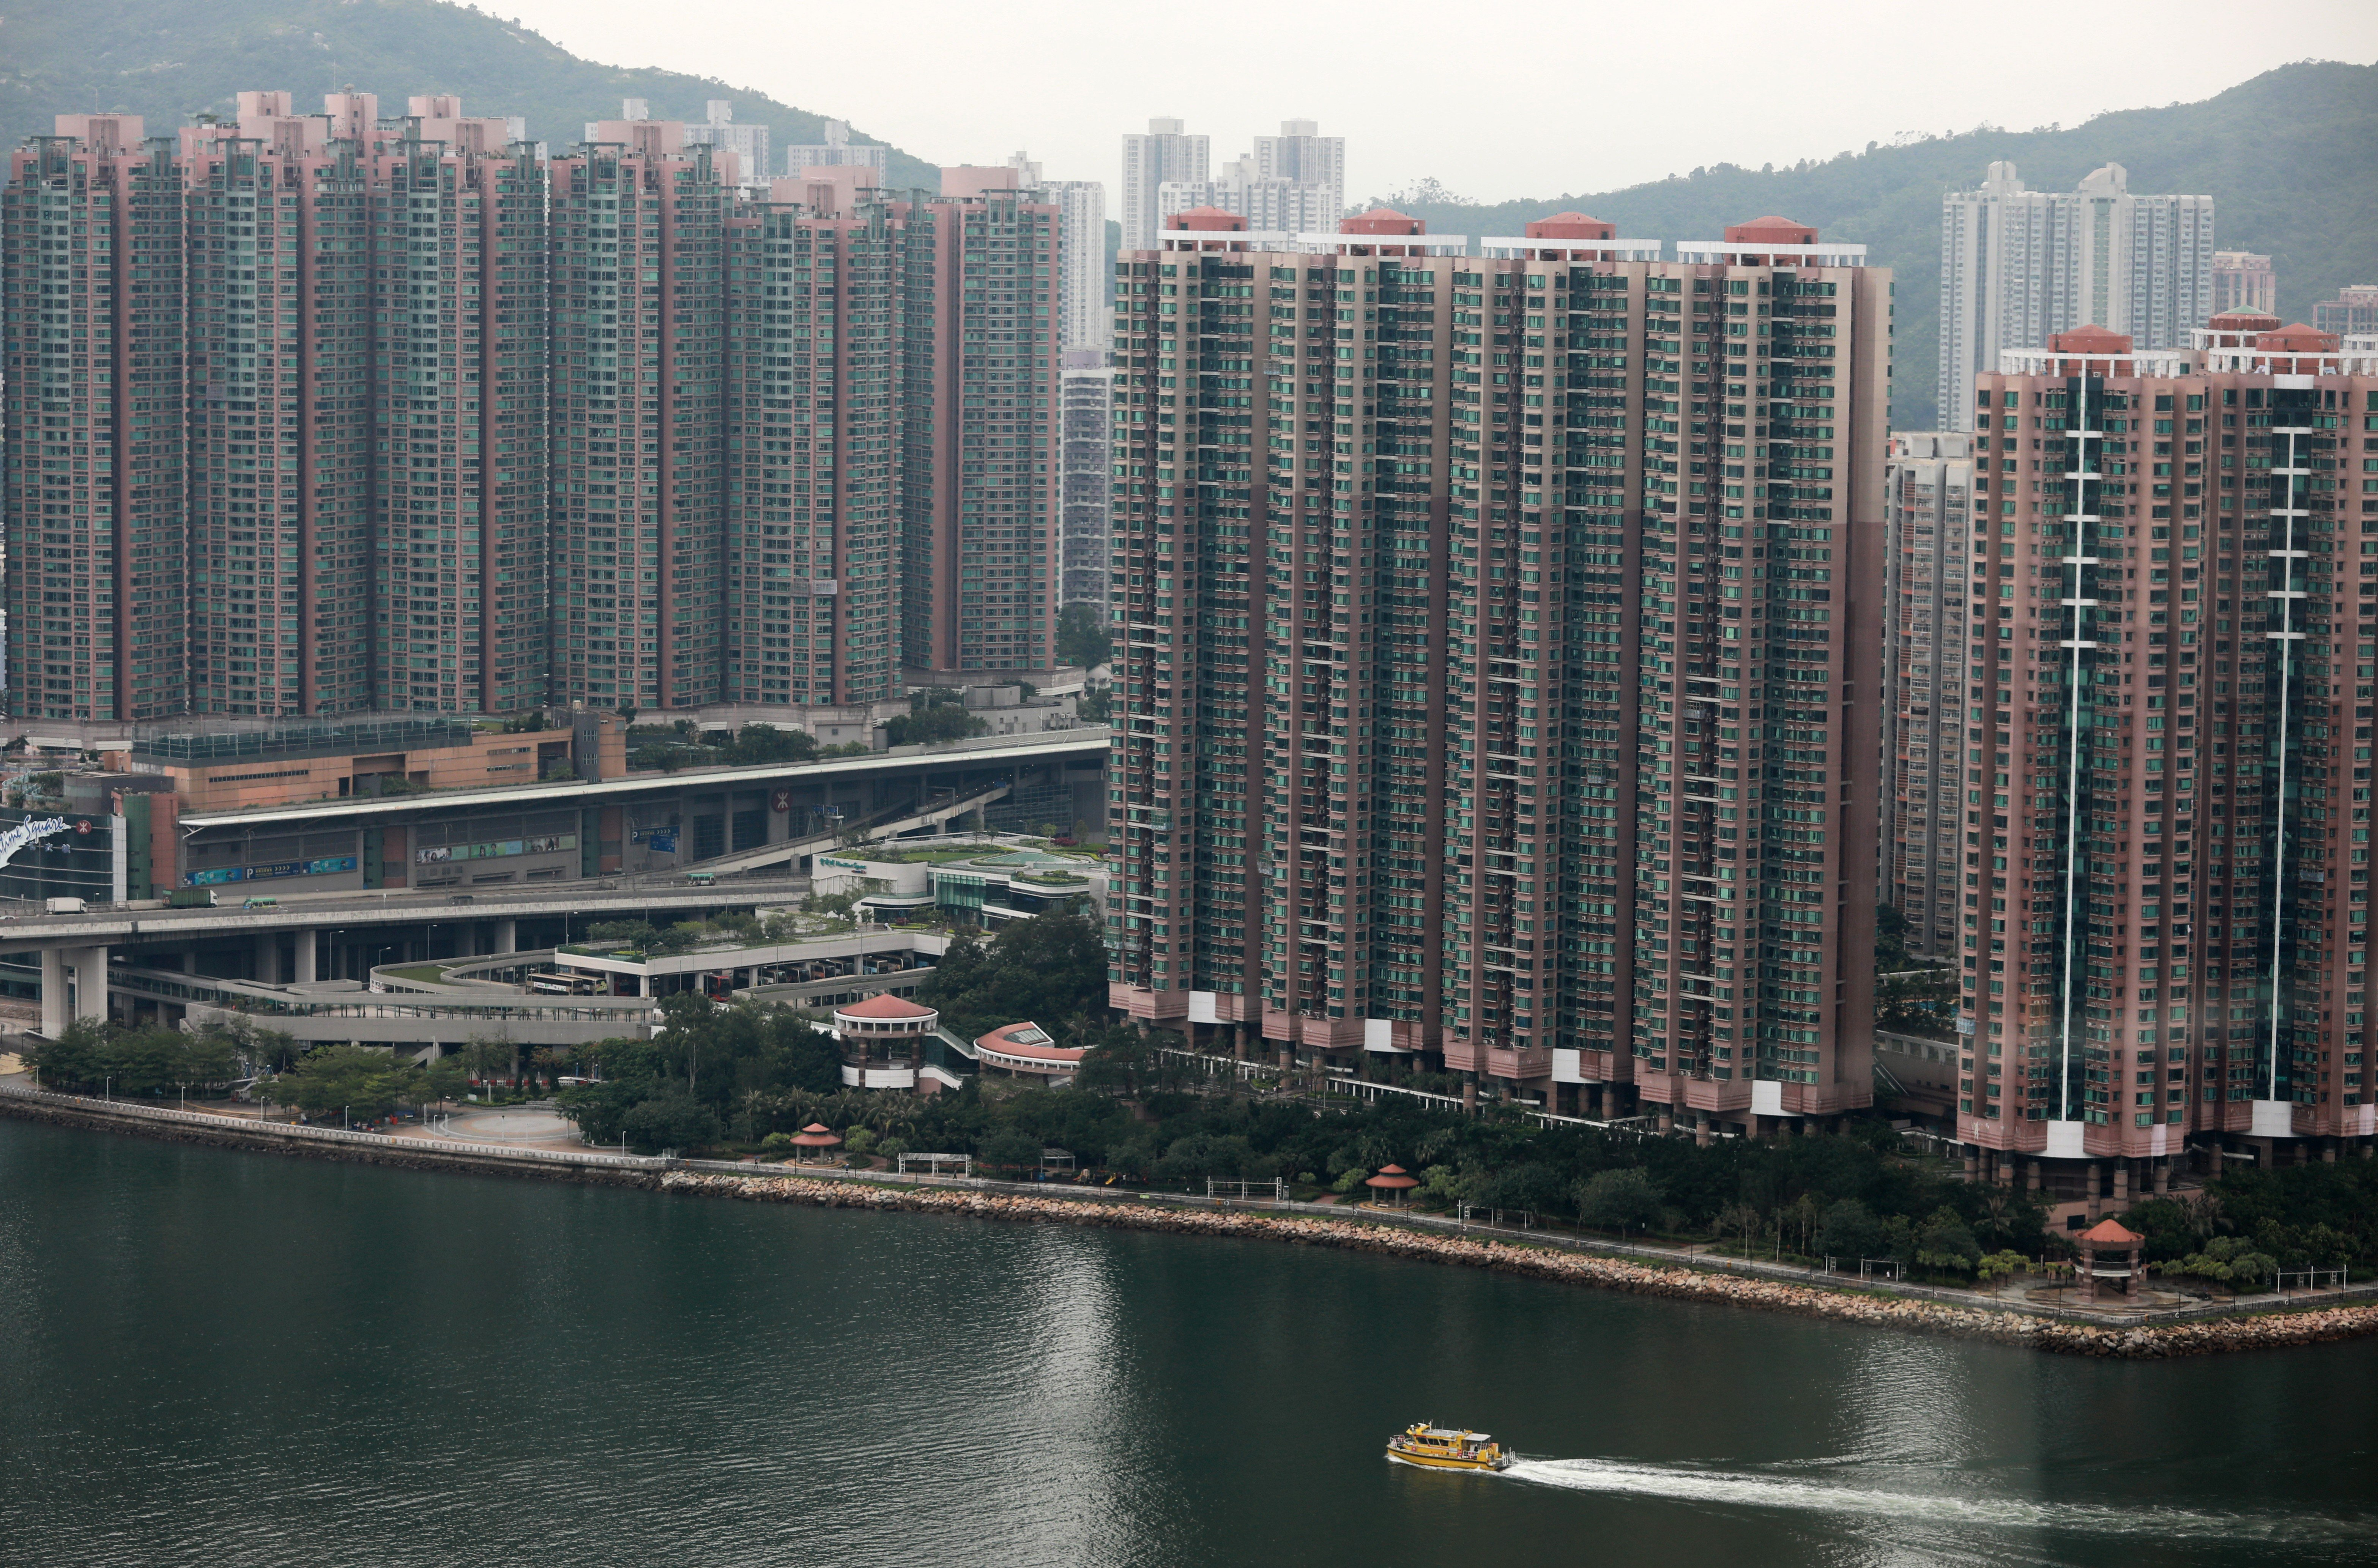 Hong Kongs Government Releases Smallest Allotment Of Land